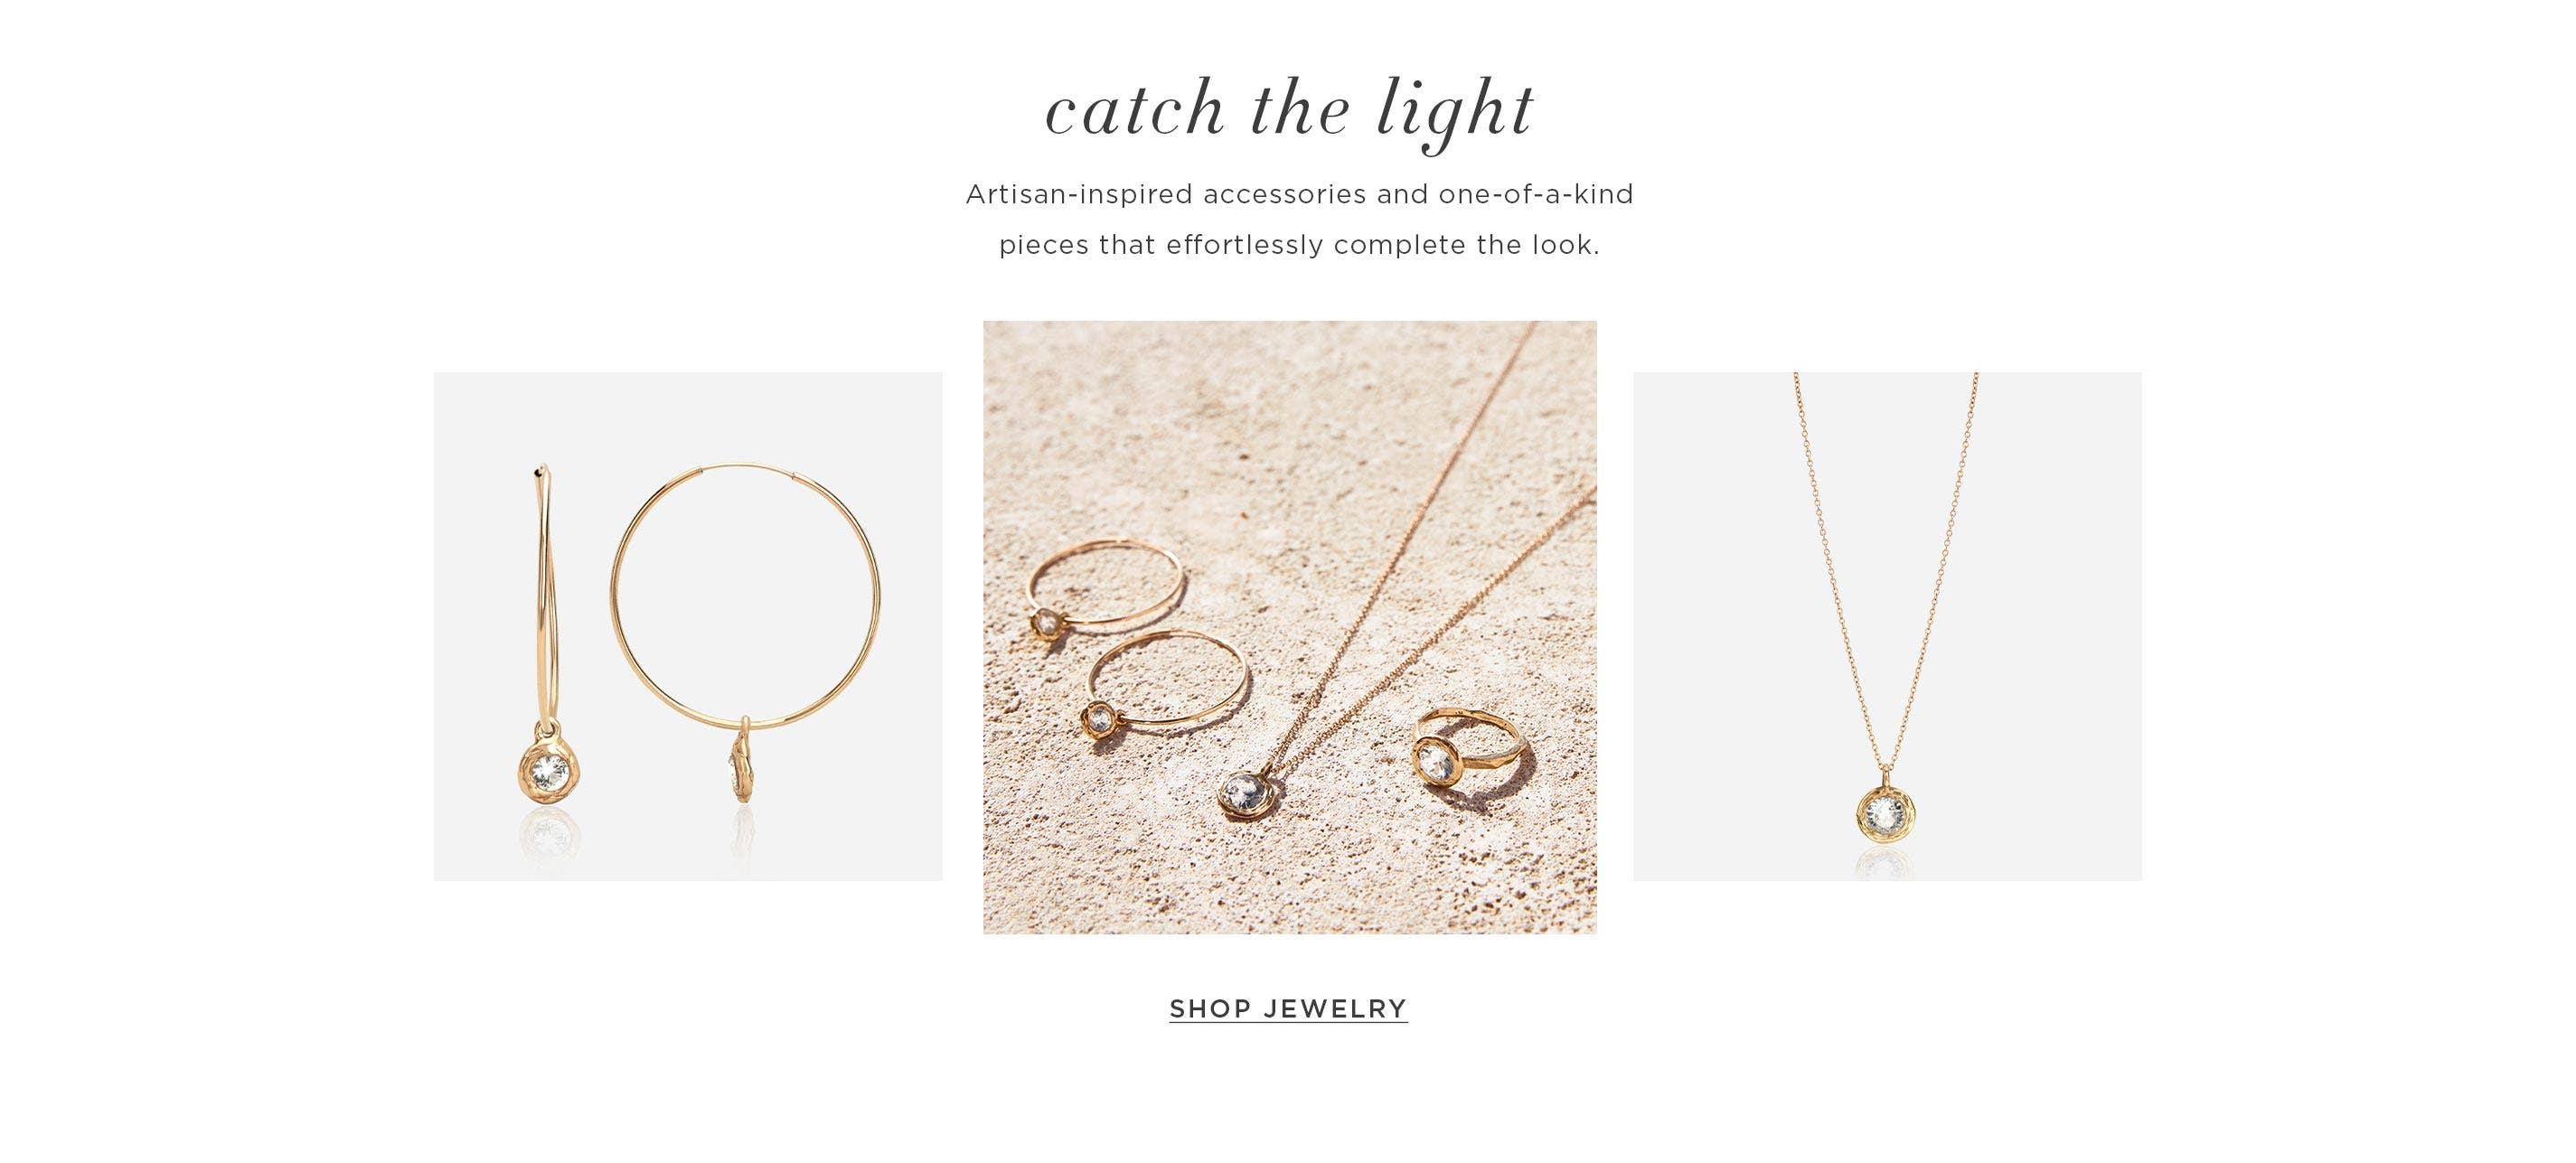 Catch the Light – Artisan-inspired accessories and one-of-a-kind pieces that effortlessly complete the look. Shop Jewelry.